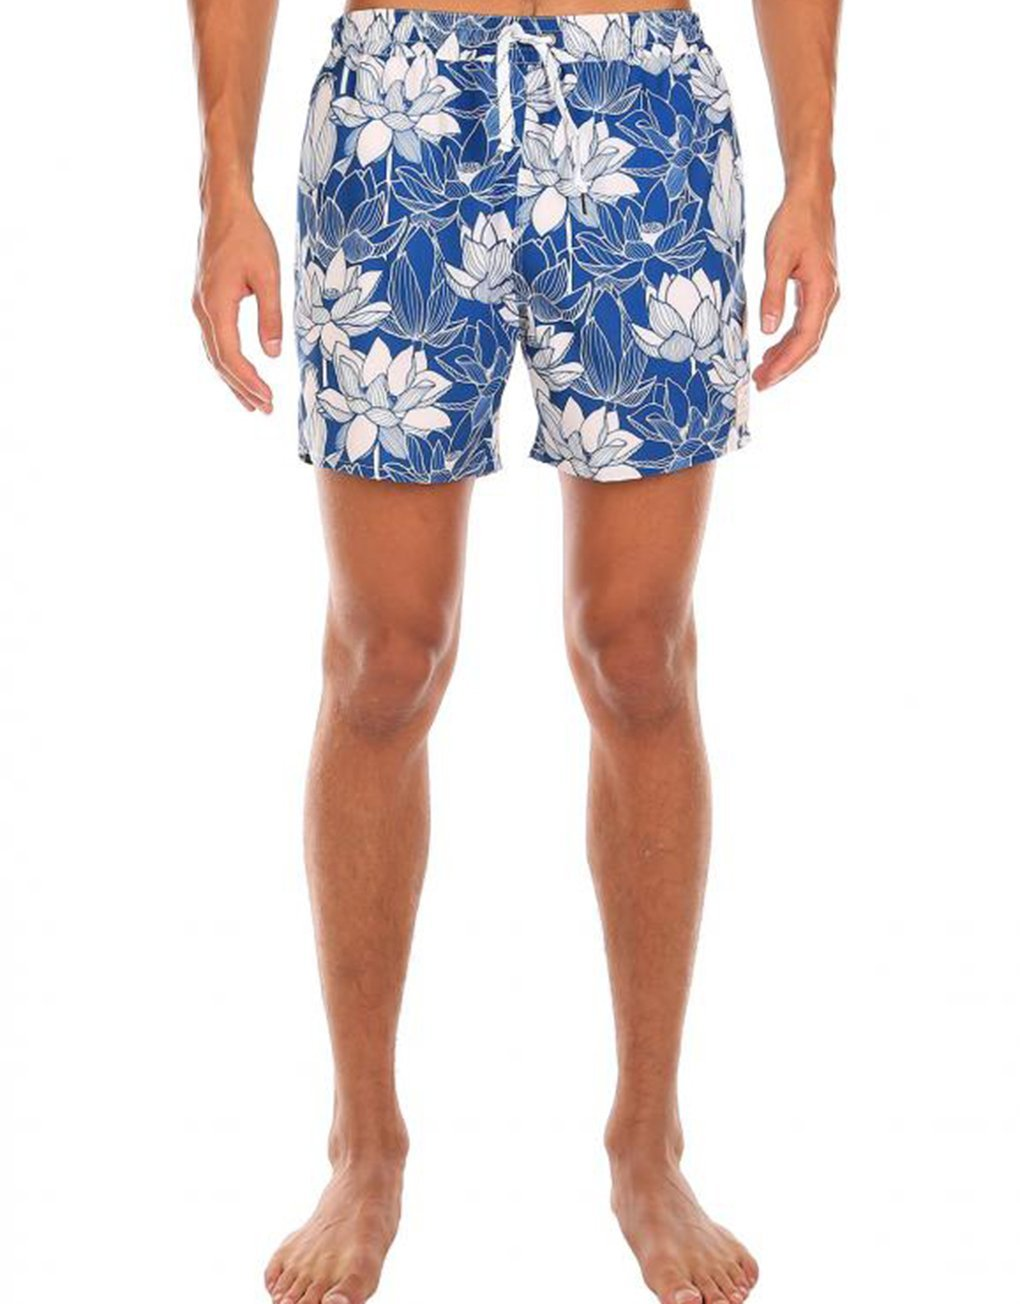 Iriedaily Dude Swim Shorts - Iriedaily Dude Swim Shorts 100% Polyester - Style No. 7190251-342 - Farve/Color. Steelblue Iriedaily Dude Swim Shorts